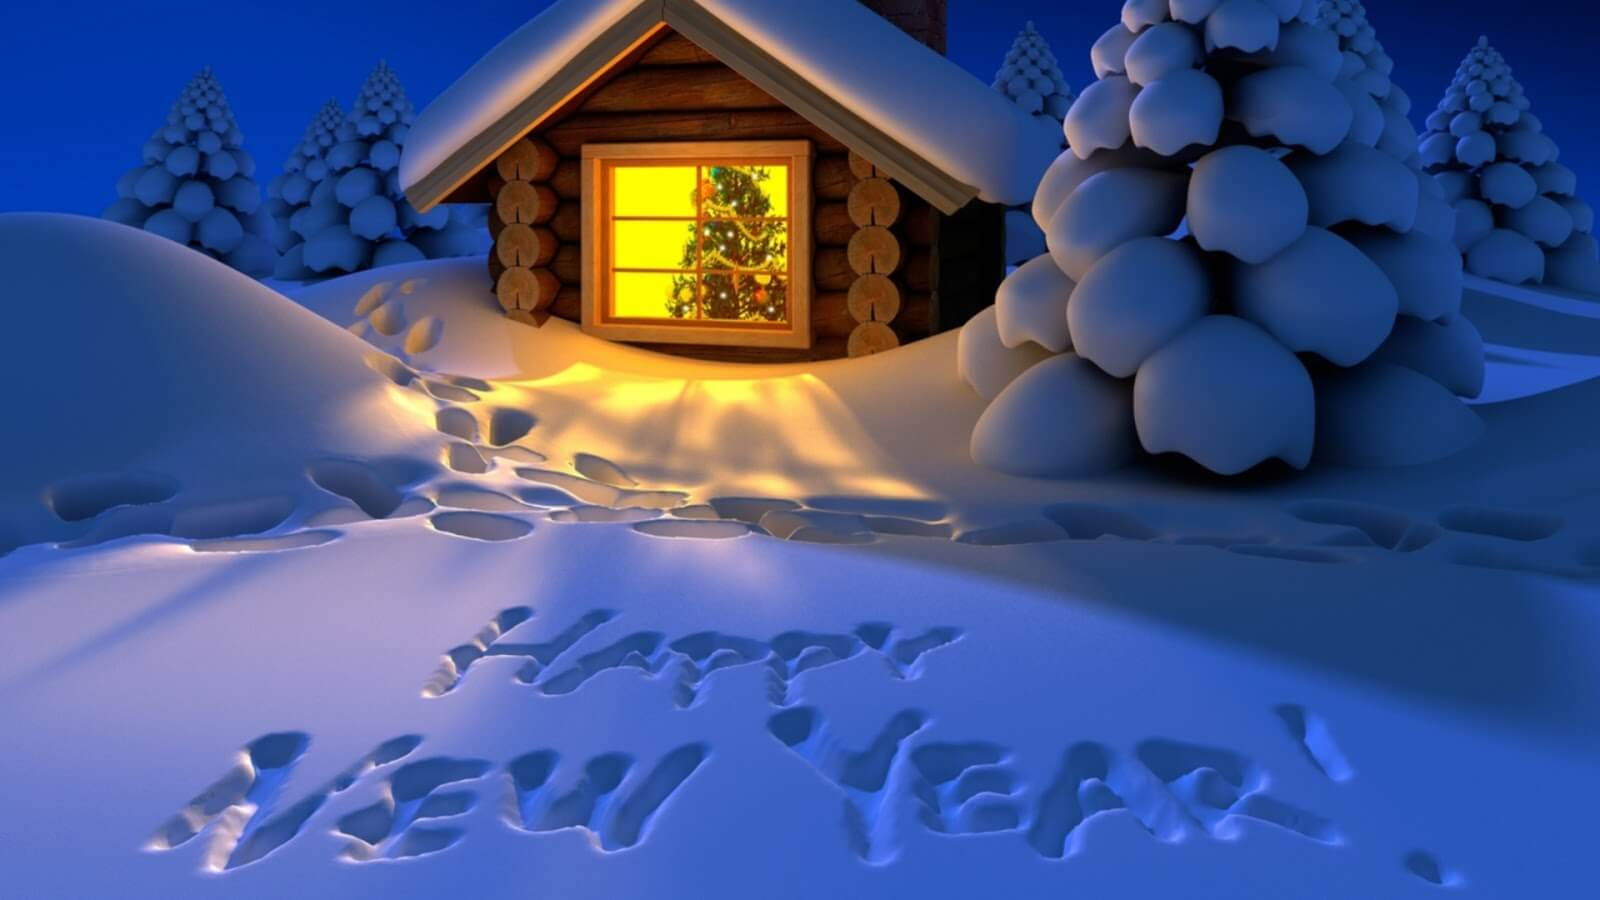 Happy-New-Year-HD-Wallpapers_012